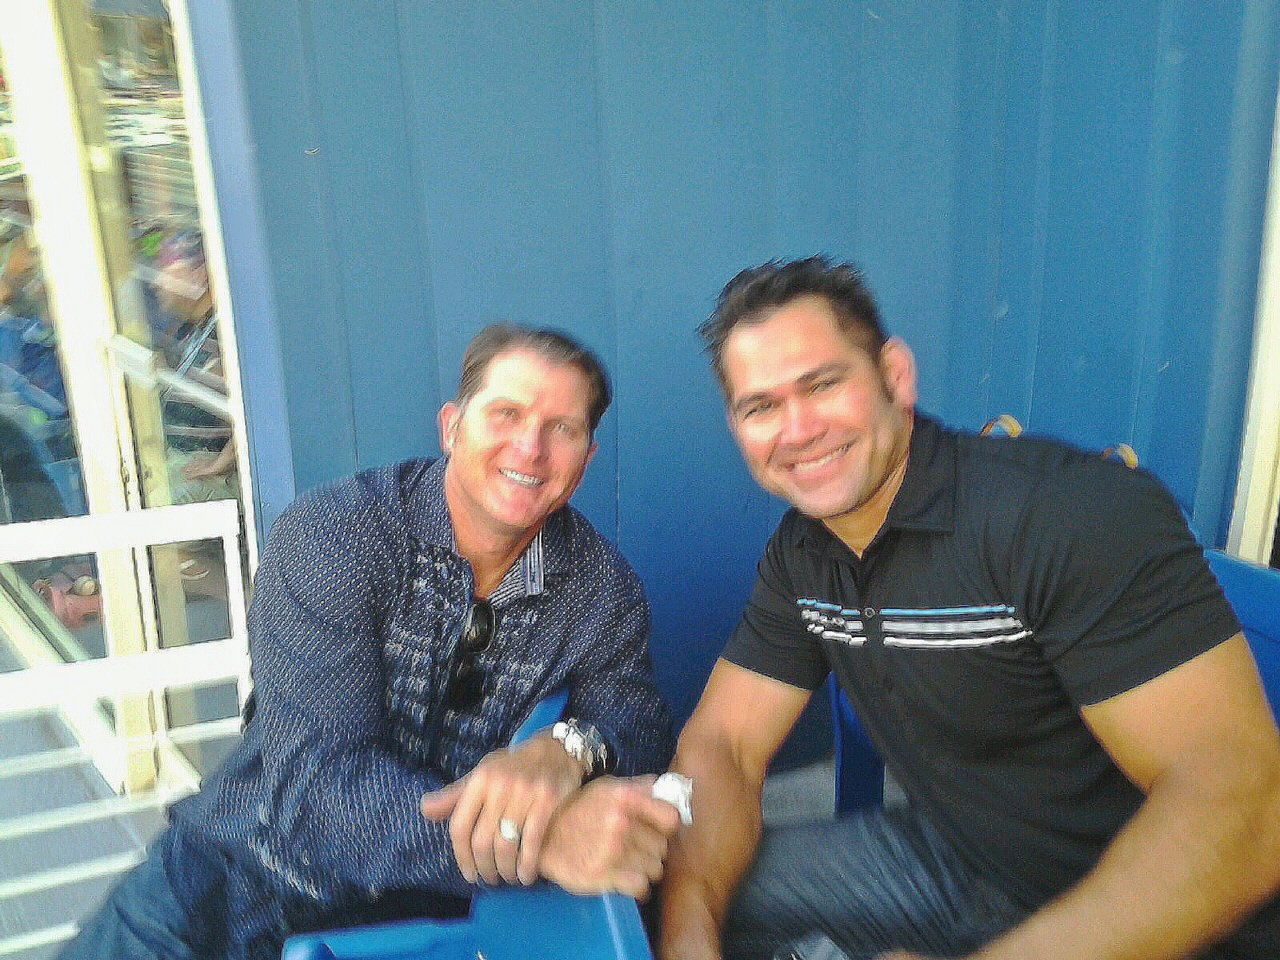 Former Kansa City Royals stars Johnny Damon and Mike Sweeney at Blue Rocks Stadium